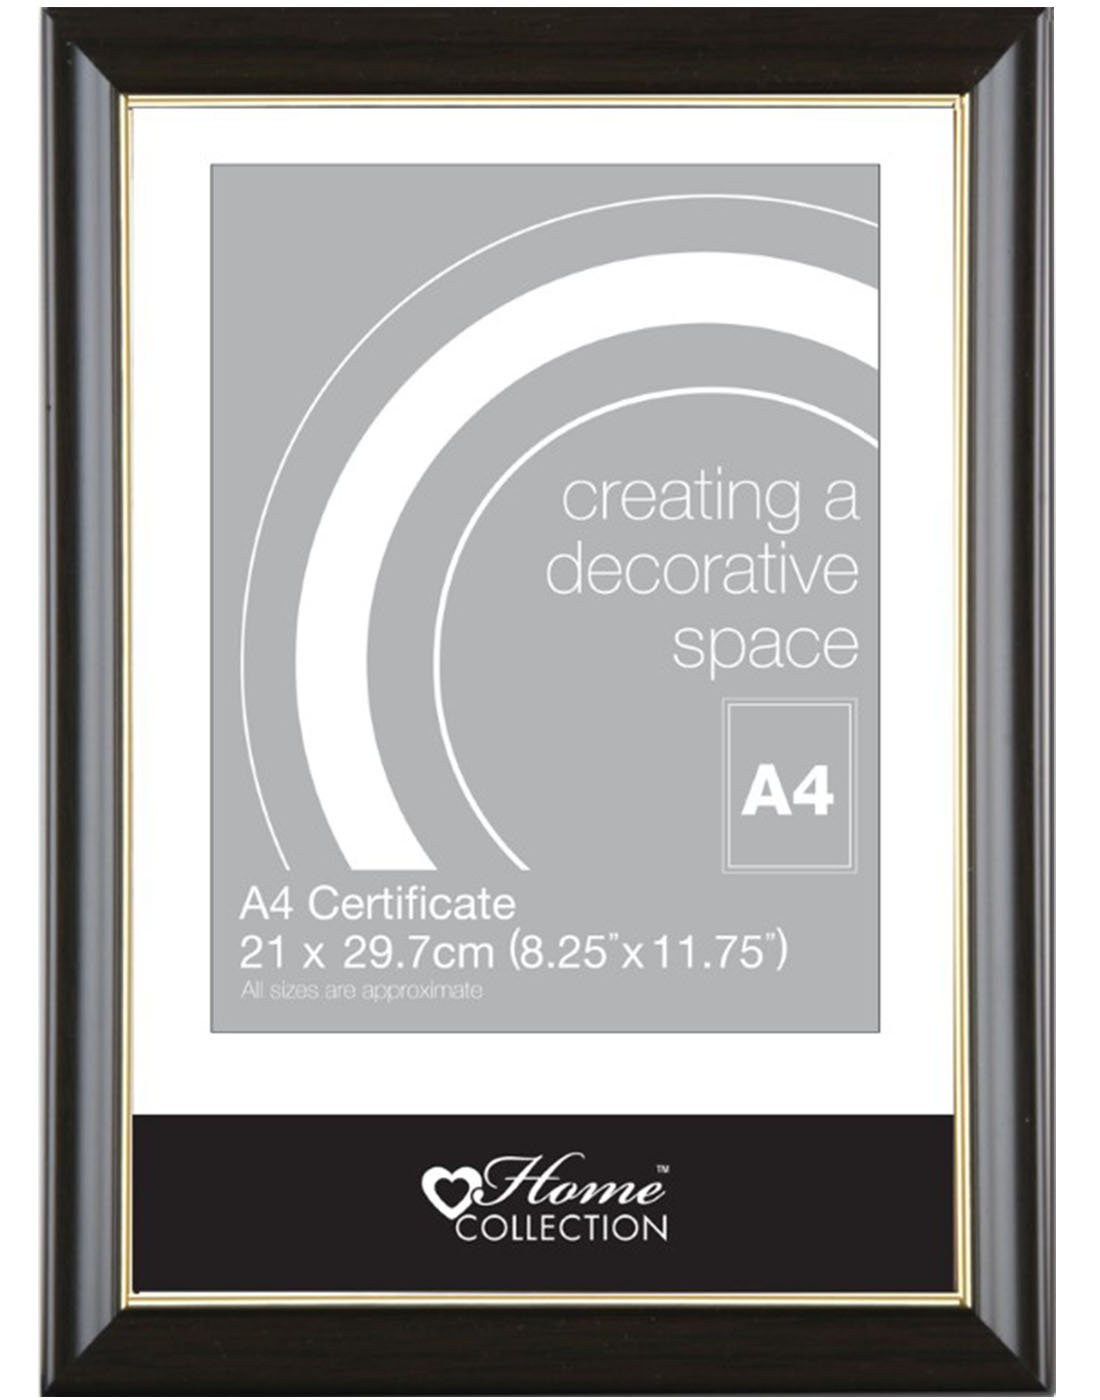 Anker Home Collection A4 Beige Certificate Photo/Picture Frame Anker International BAFG/3